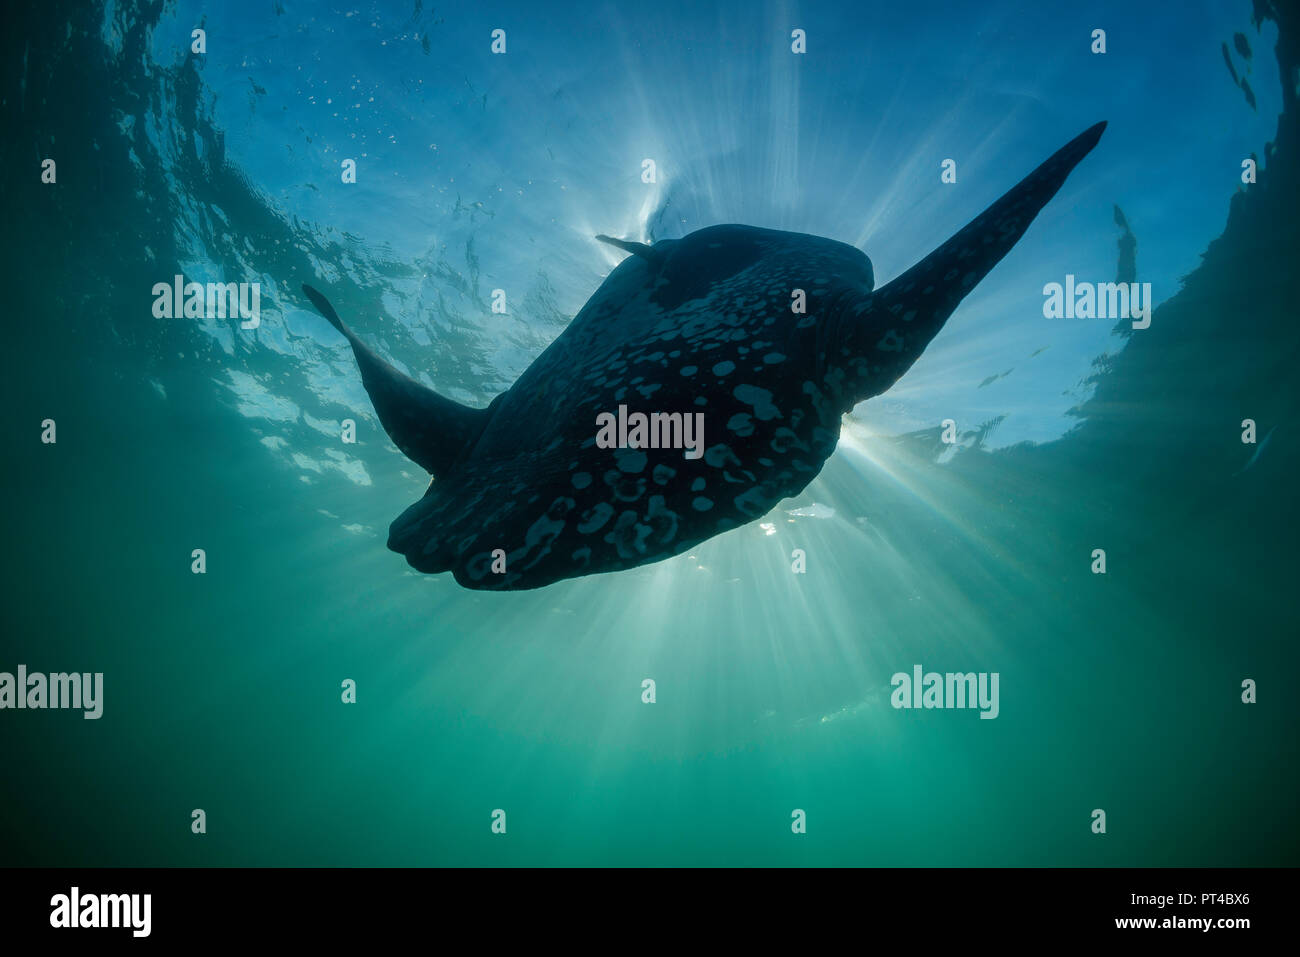 Close up view of an oceanic sun fish, West coast of South Africa. - Stock Image